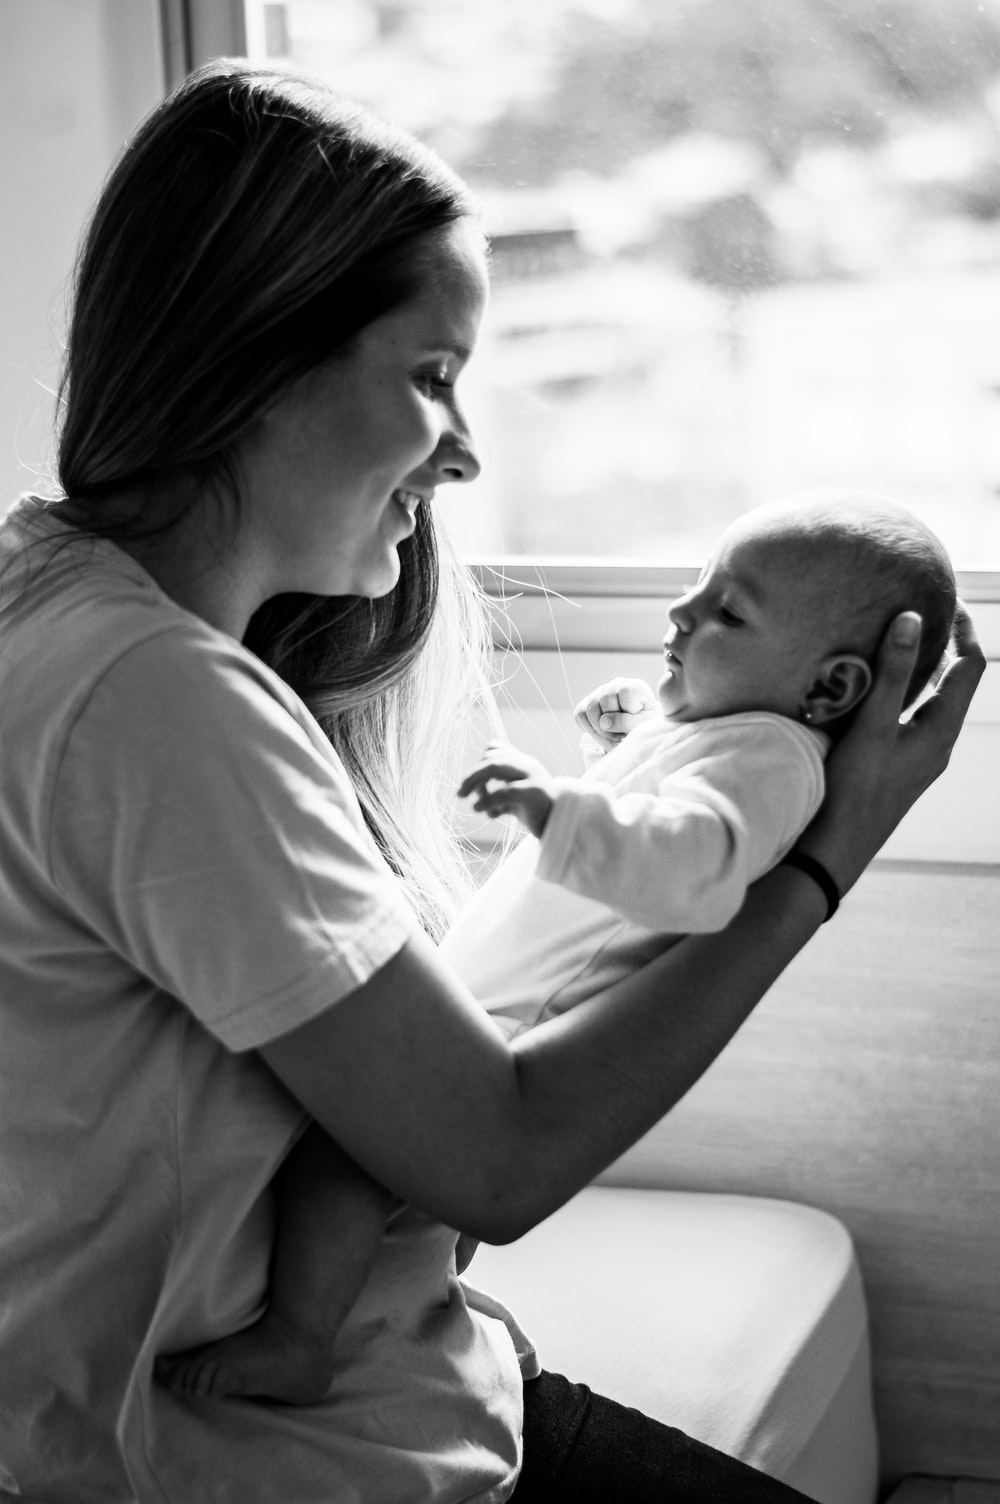 grayscale photo of woman in t-shirt carrying baby